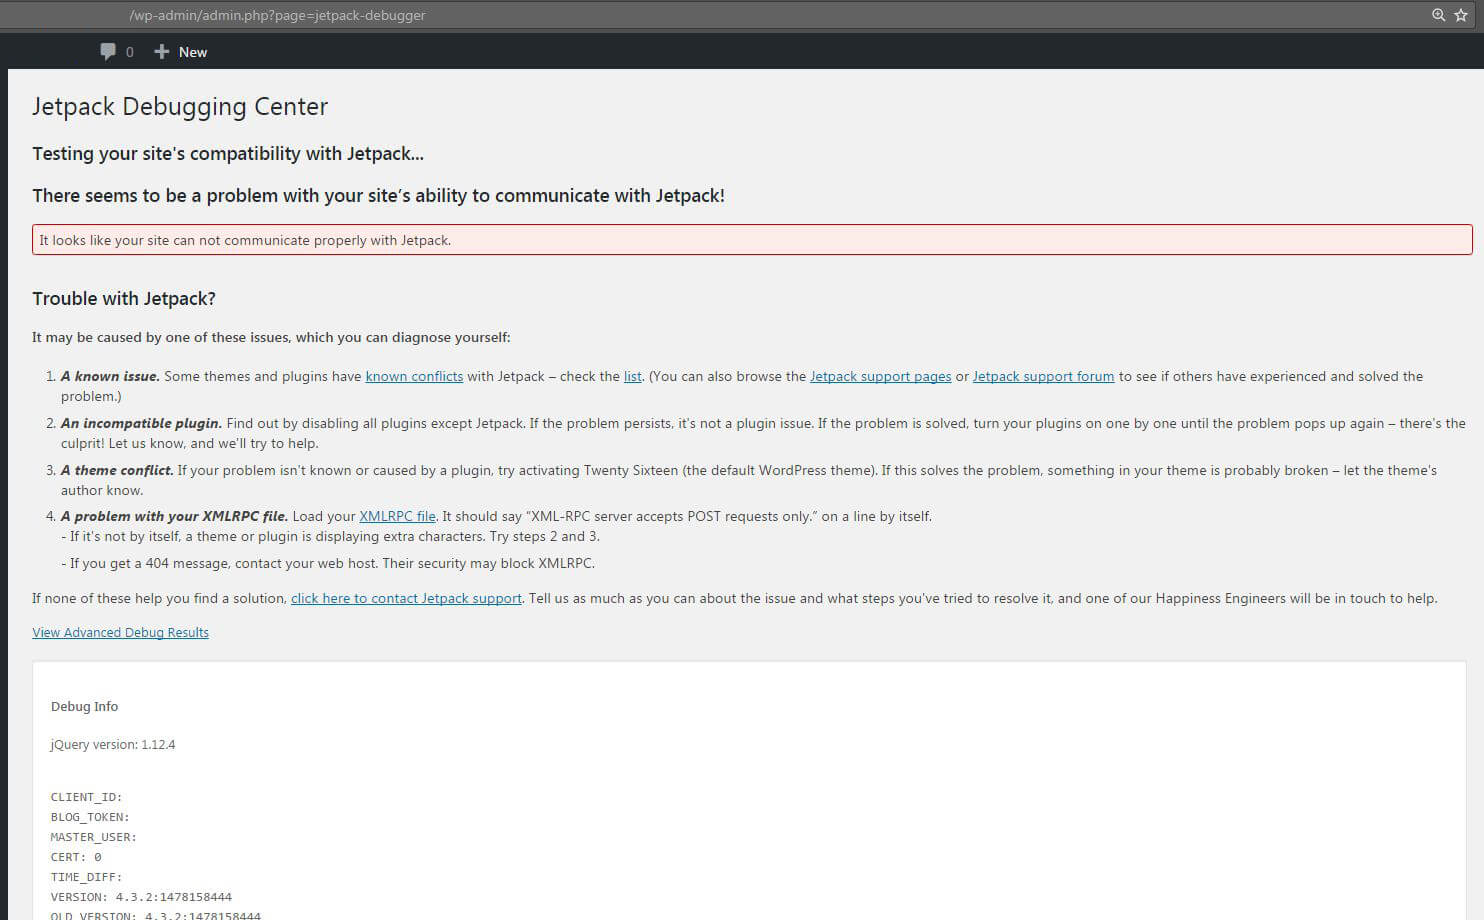 SOLVED] - Jetpack server was unable to communicate - cURL error 28: